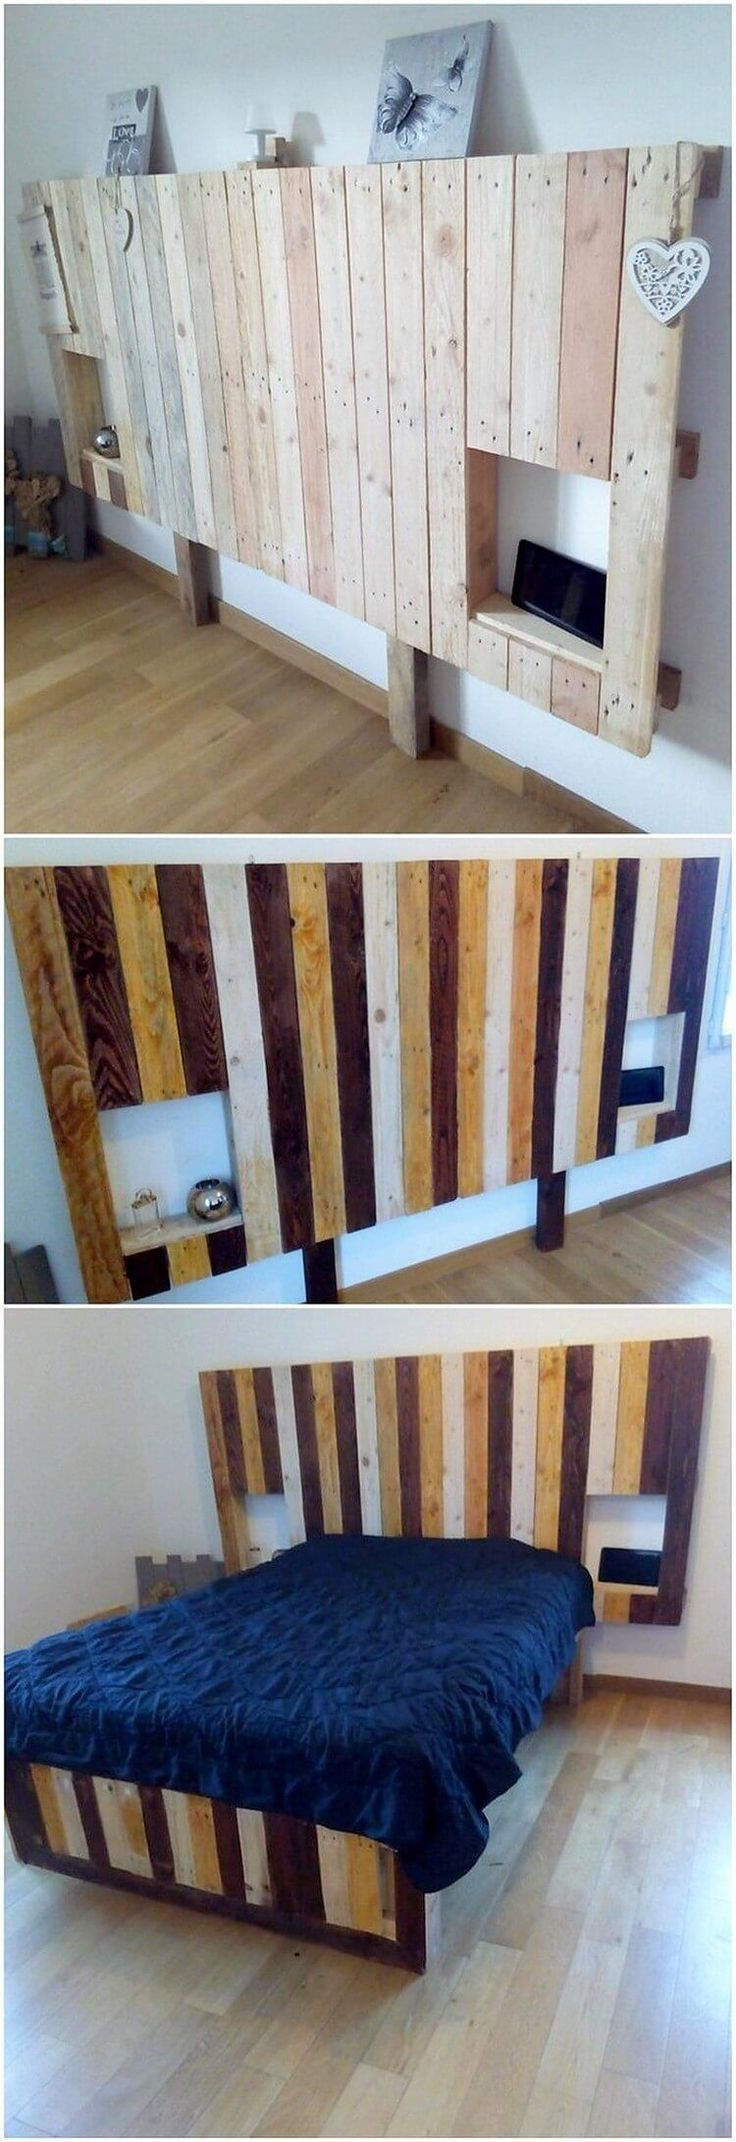 Having an inclusion of the headboard bed creation structure is the main want in almost all the houses and choosing the wood pallet cabinet is the ultimate best idea for you. As you can view in this image, here the wood pallet headboard that is rustic shaded in old fashion furniture mode. #homeimprovementandlastmanstanding,